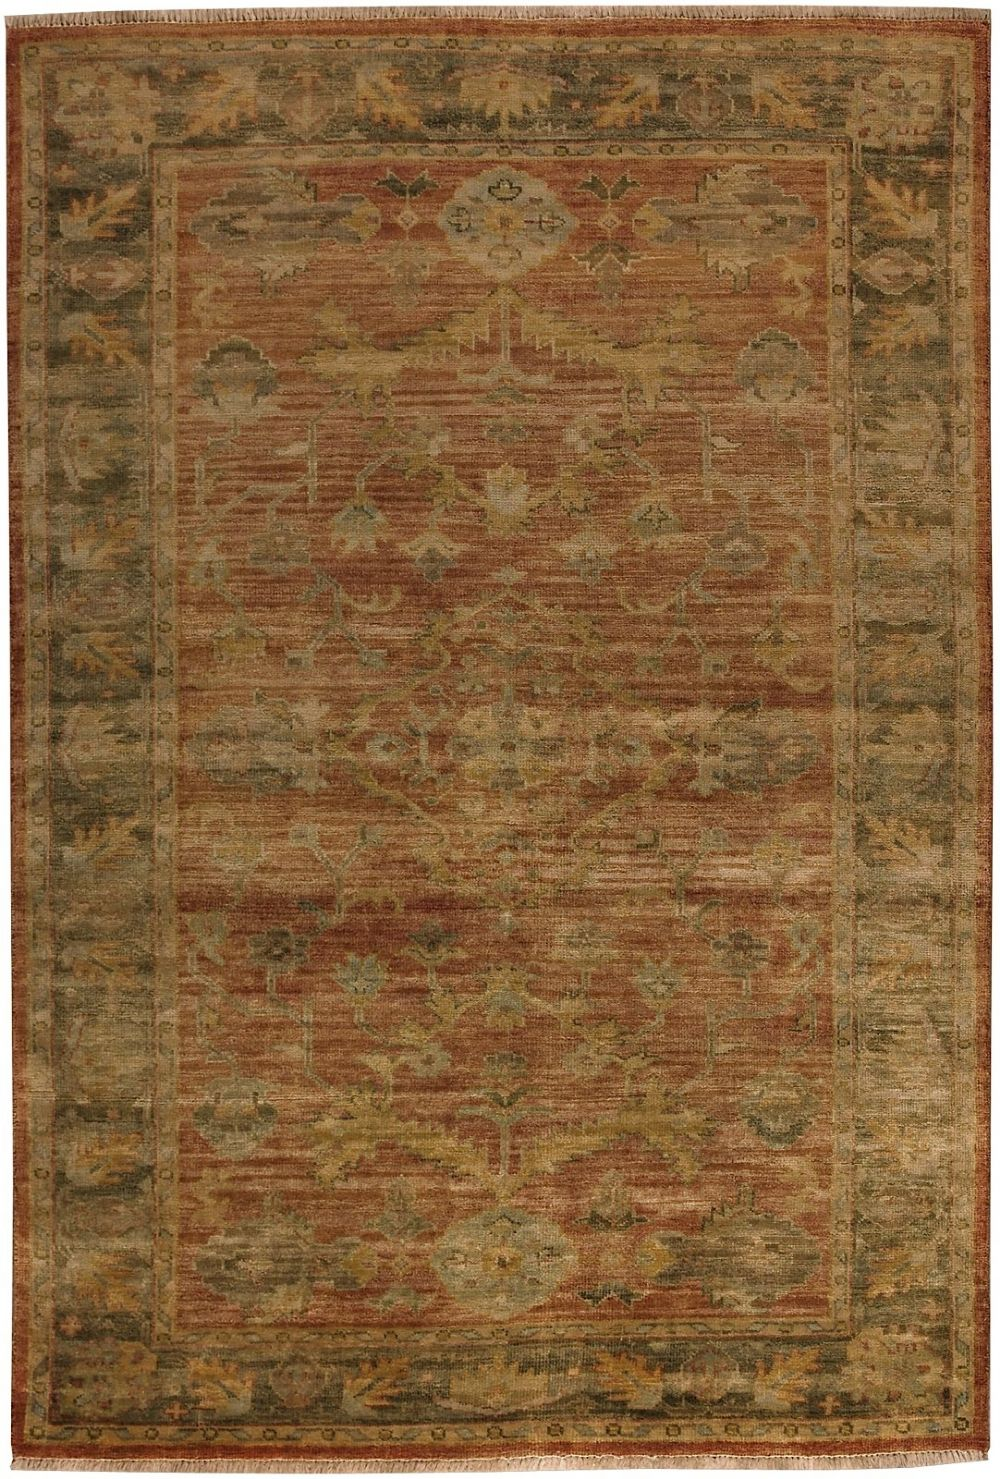 uttermost eleonora traditional area rug collection